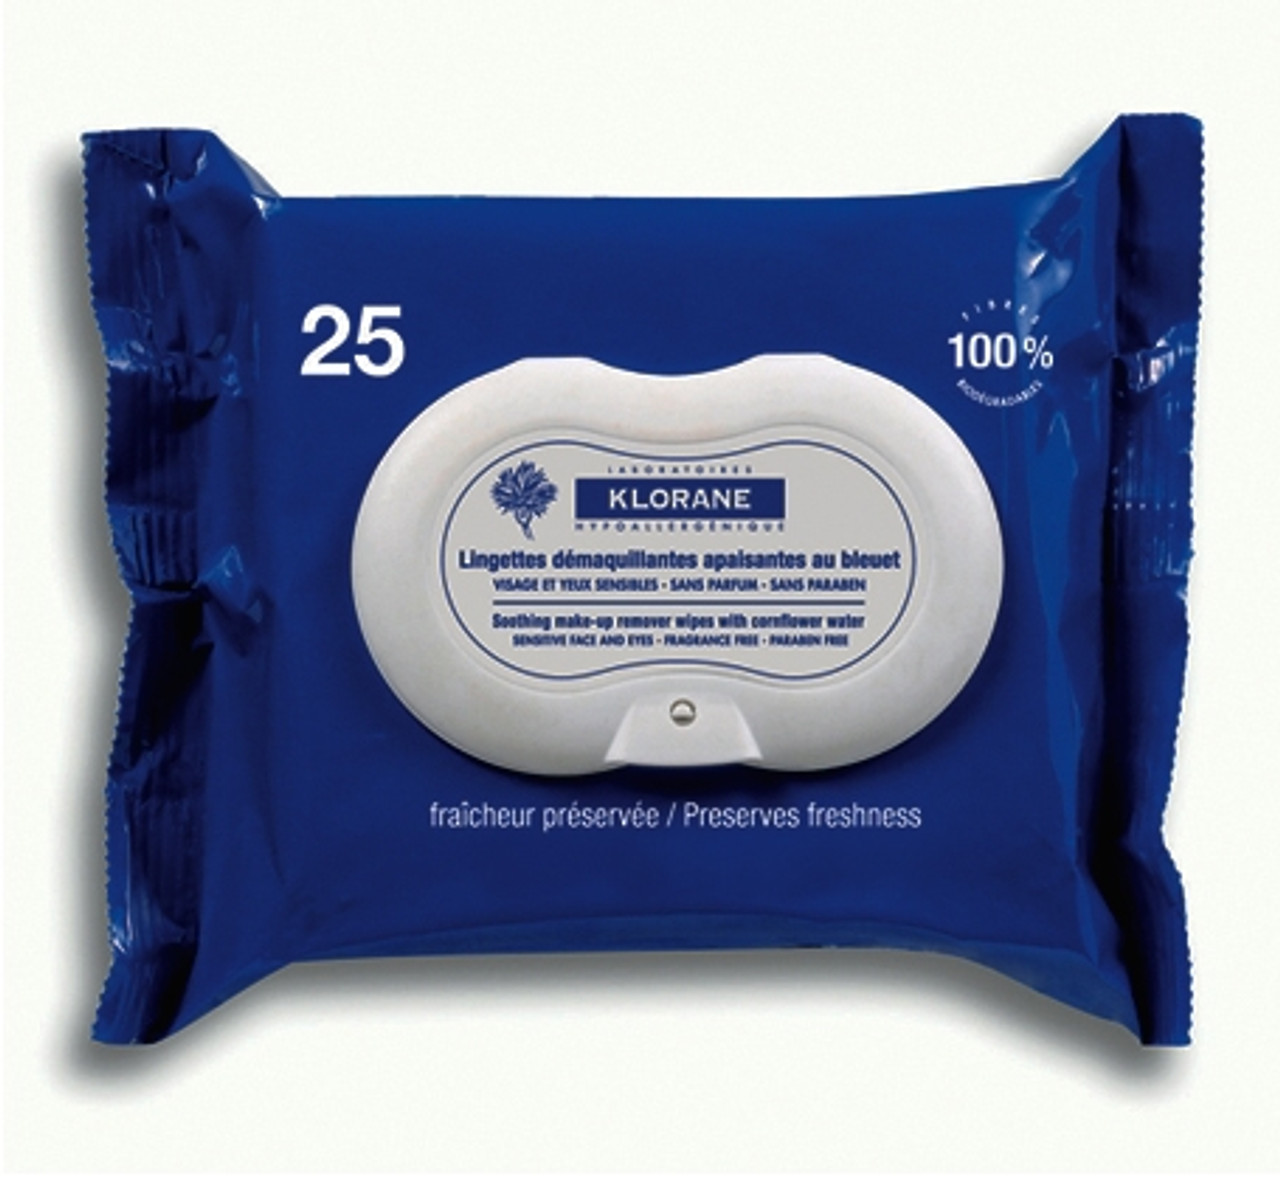 Klorane Soothing Make-Up Removal Wipes